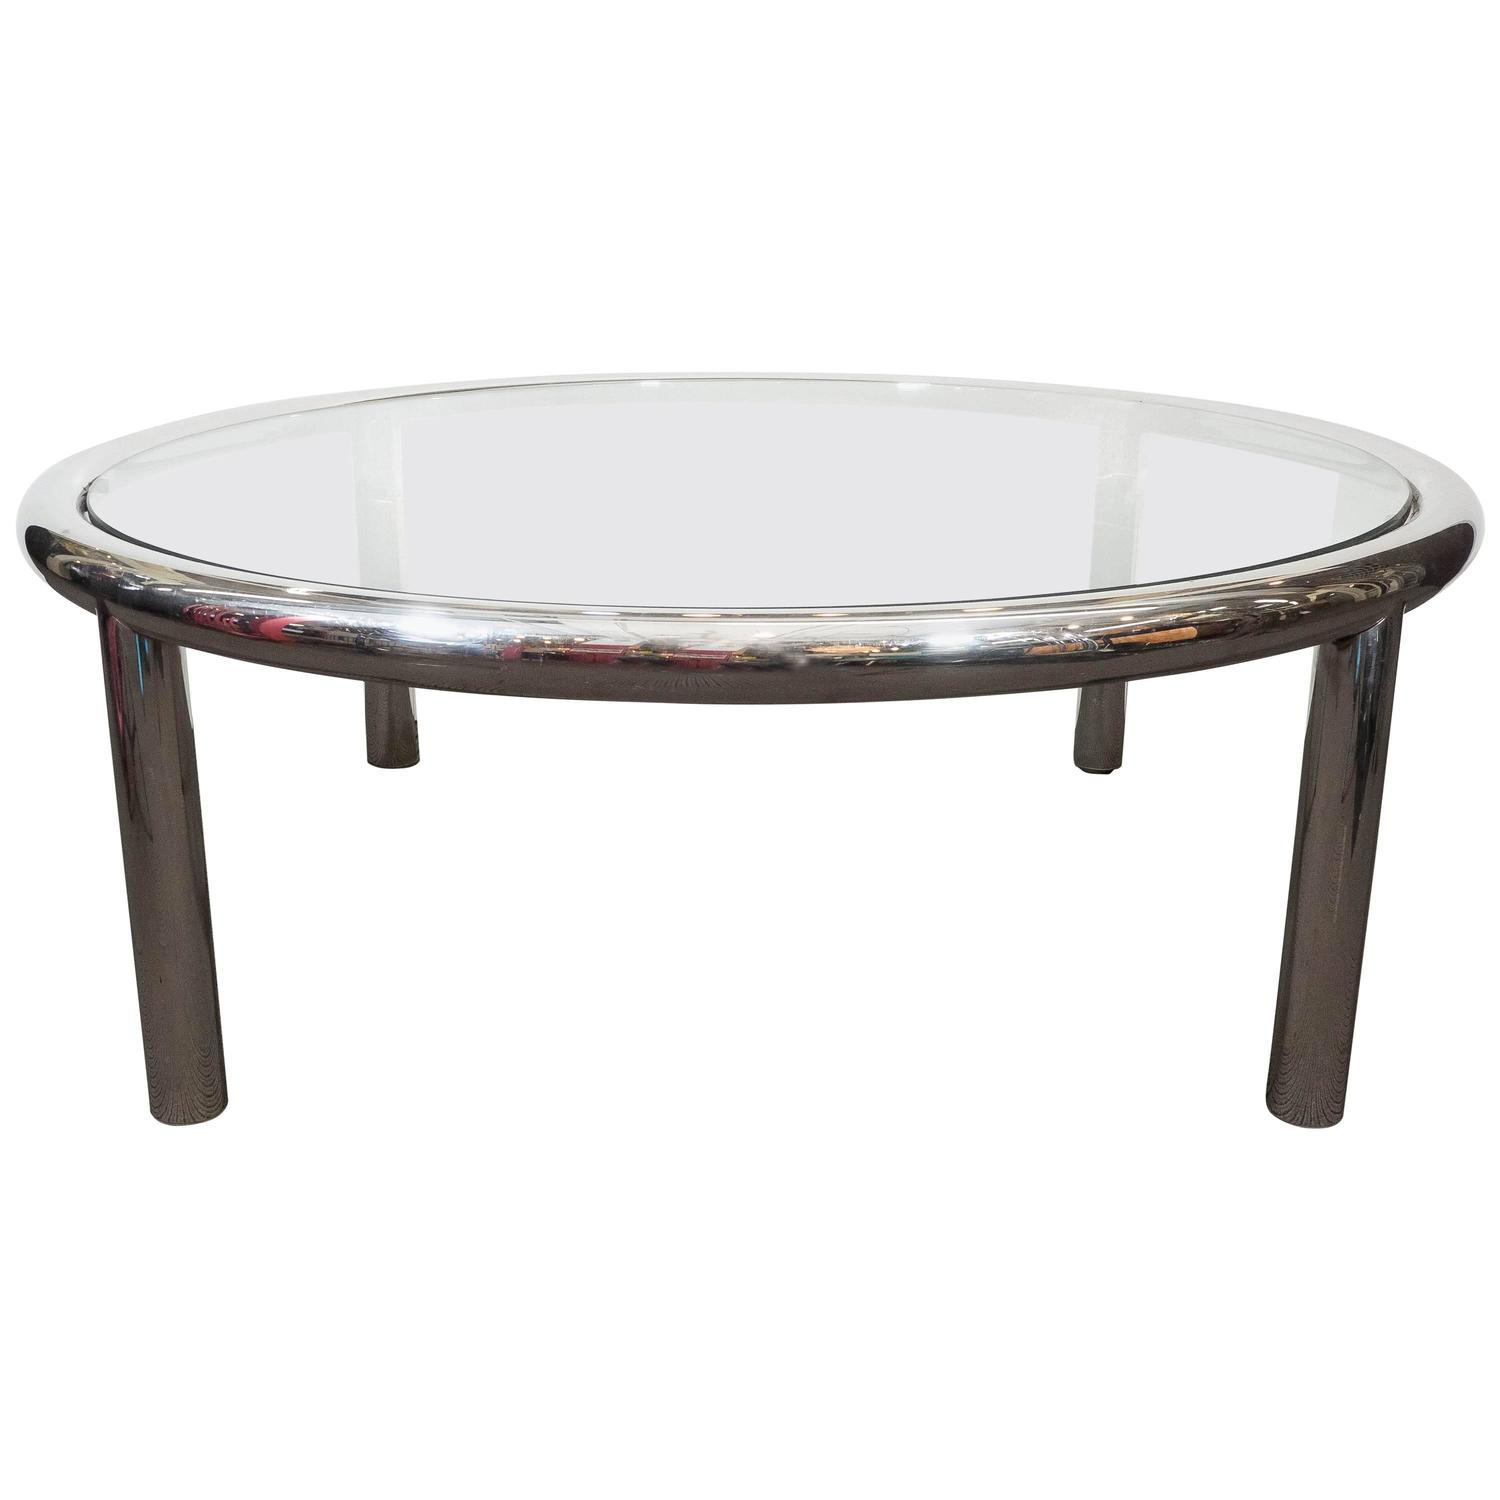 Tubular chrome glass top round coffee table for sale at for Coffee tables glass top